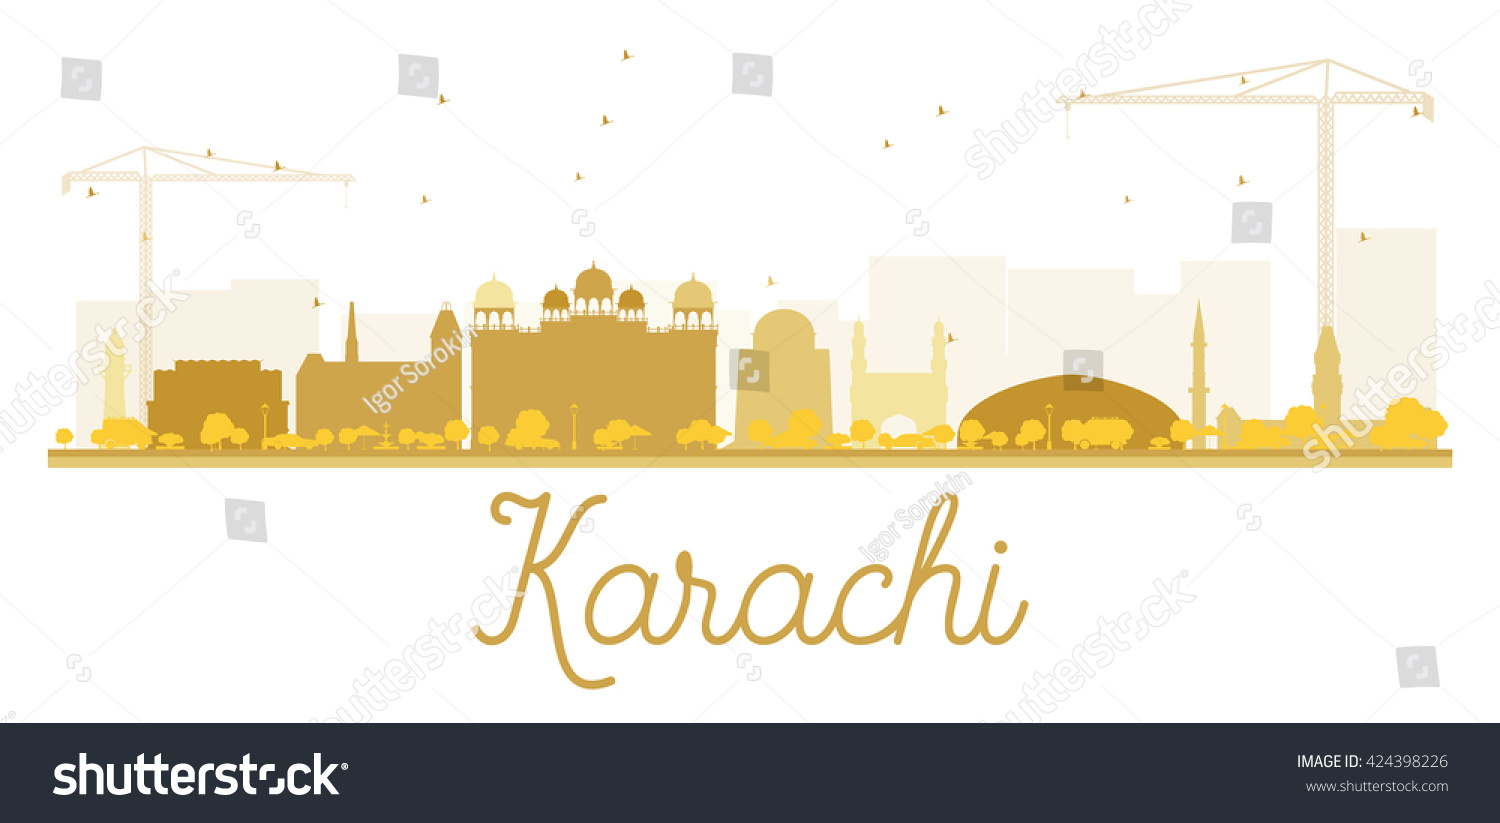 Outline athens skyline with blue buildings and copy space stock vector - Karachi City Skyline Golden Silhouette Vector Illustration